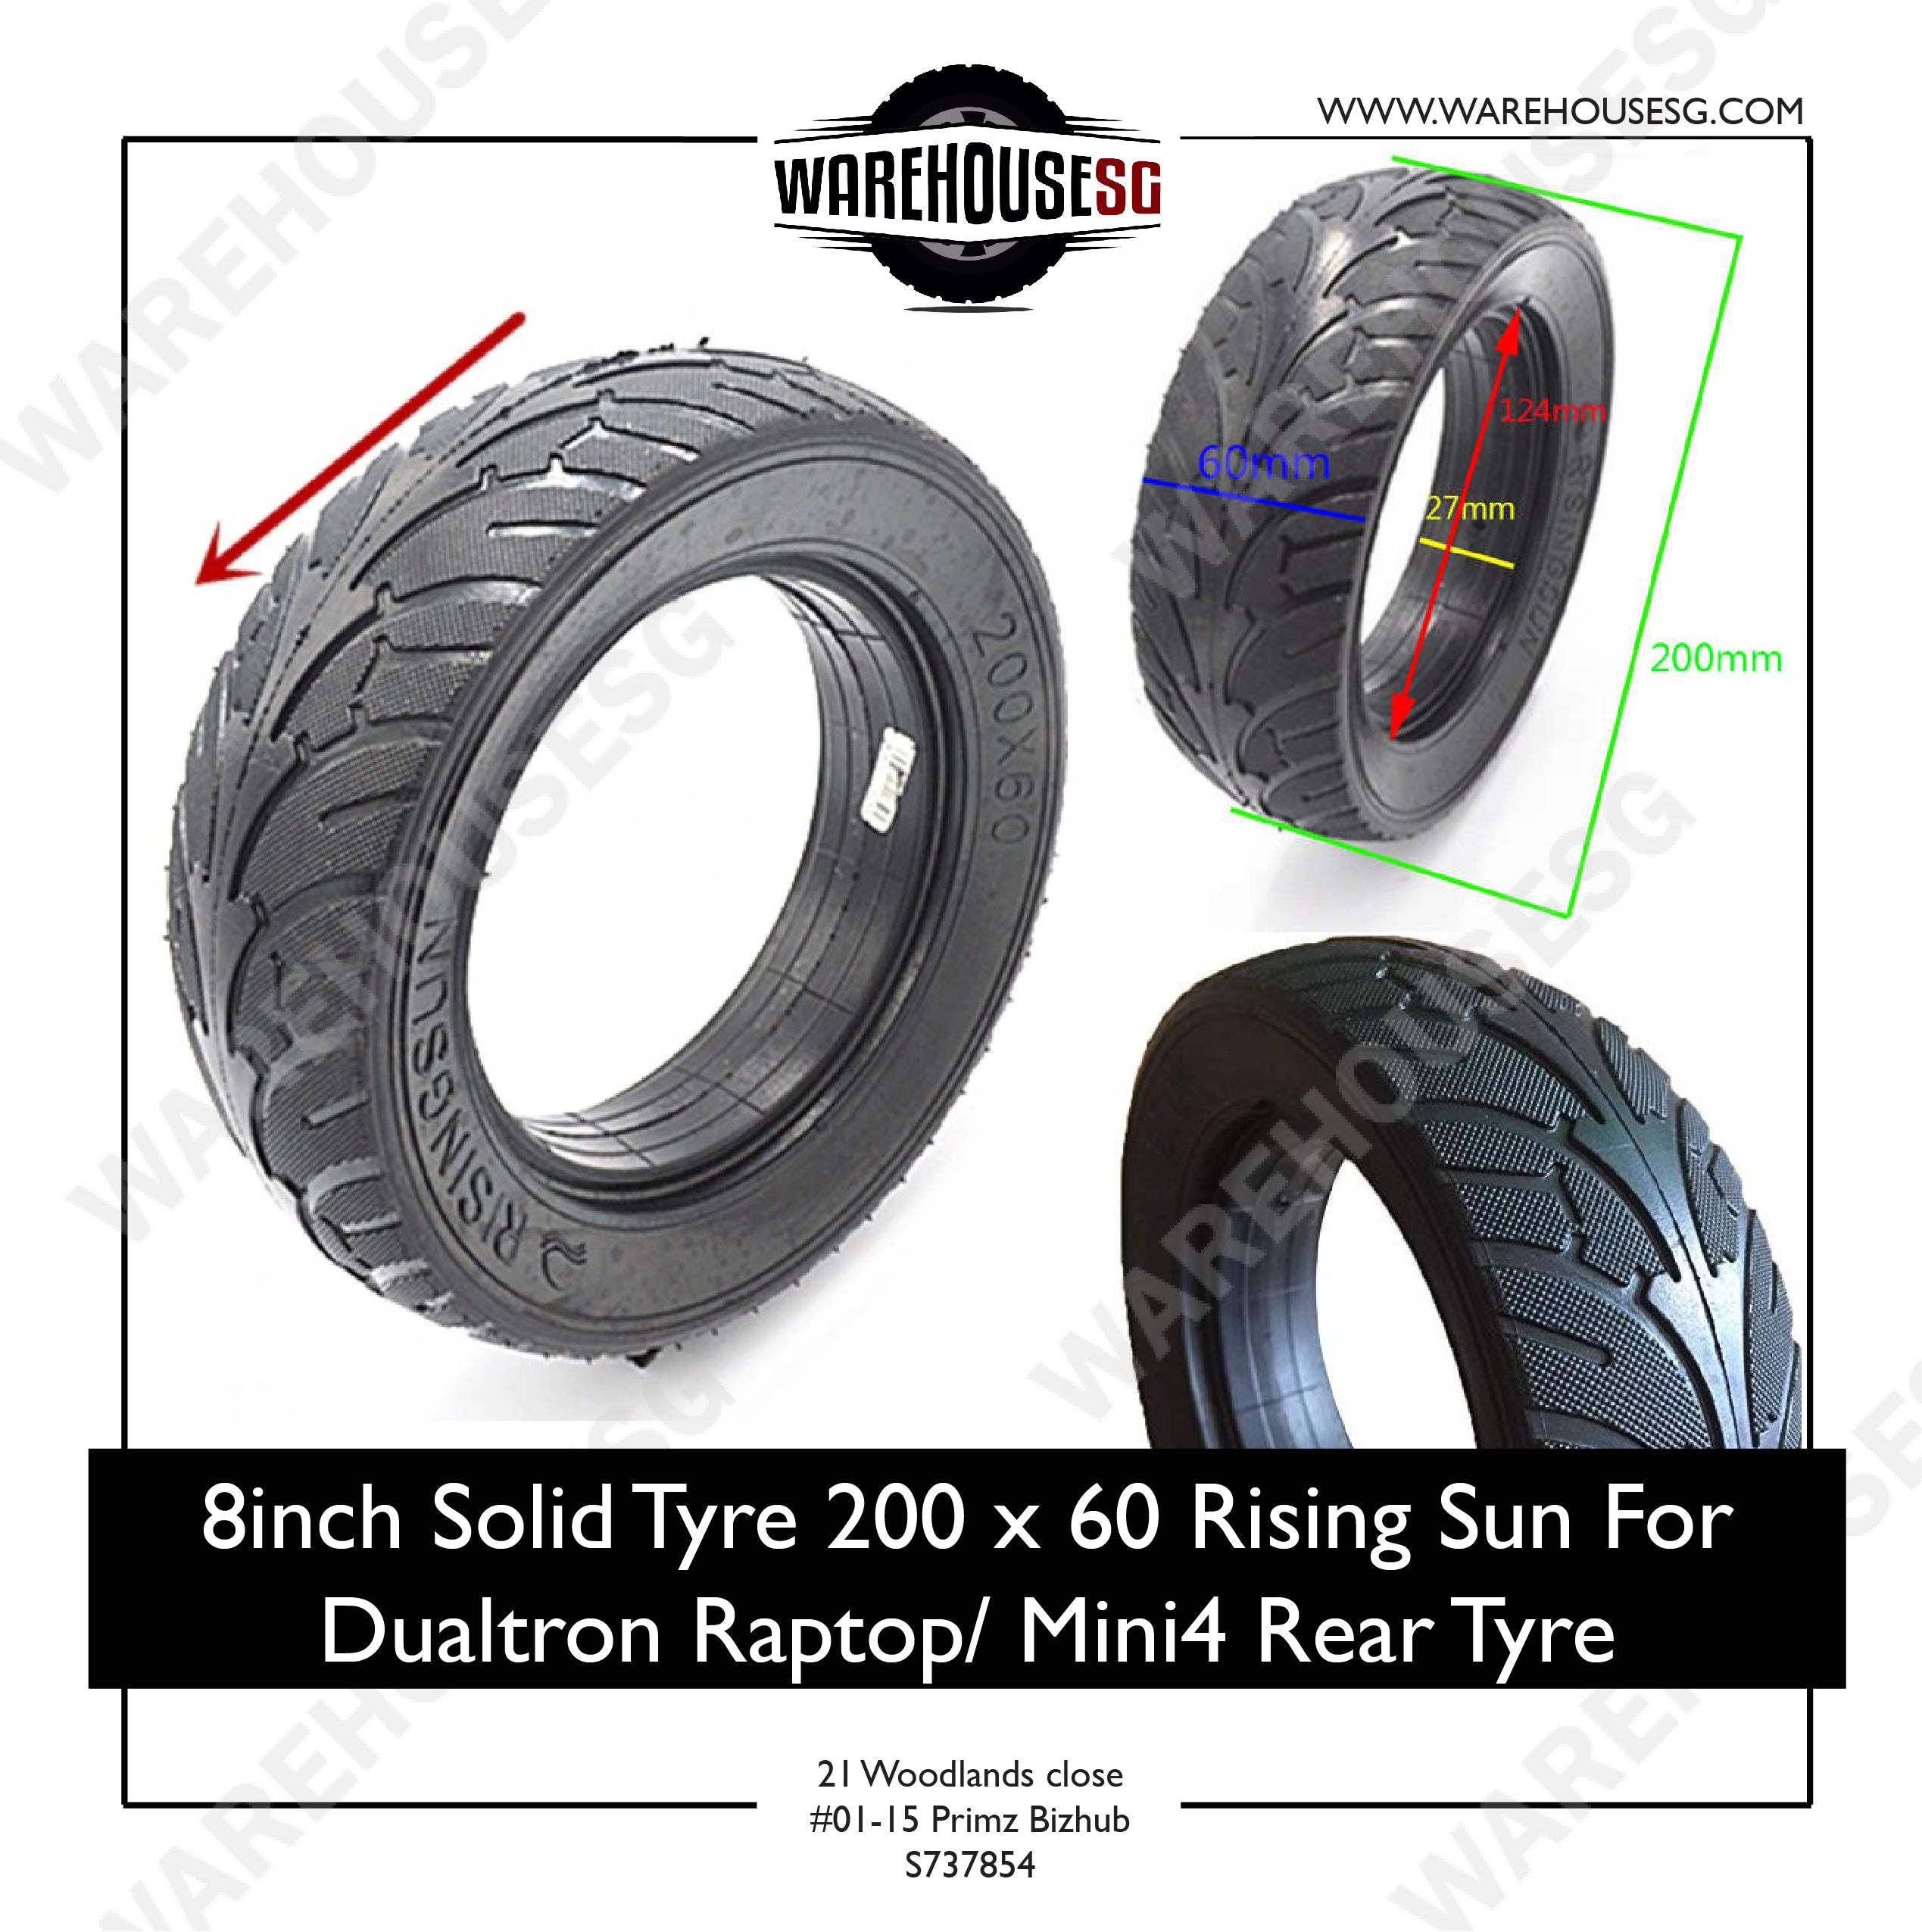 8 inch Solid Tyre 200 x 60 Rising Sun For Dualtron/ Raptop Mini4 Rear Tyre